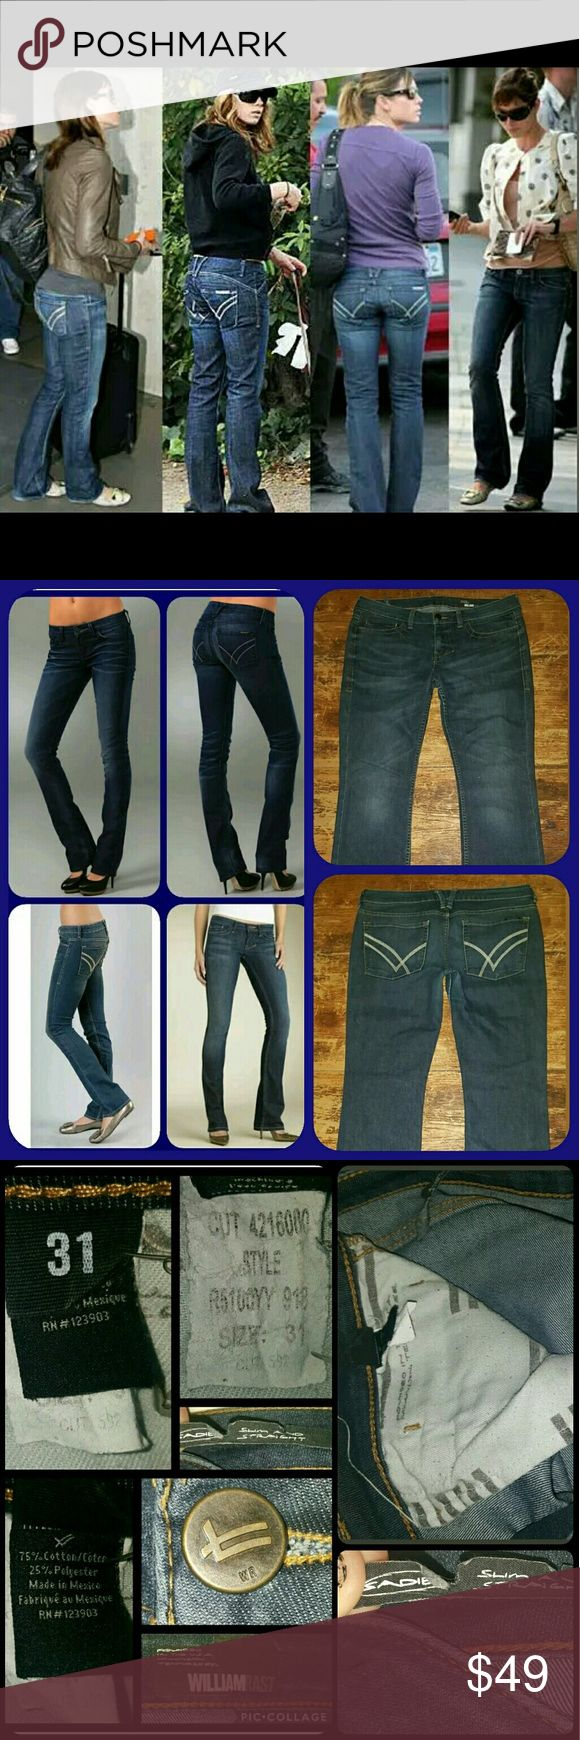 William Rast Sadie Slim Straight Boyish cut Jeans Good used condition! Still alot of life in these luvlies! Slight wear at crotch areas as consistent w/ light wear & laundering.  WR  (as well as SFAM) seem to both wear at crotch easy in my experience,rather it is thigh but upper inside thigh area.more so than other jeans .pls see last pic..not a hole.nor threadbare but u might want 2 add interior patch just 2help prevent more wear. imo. Sadie slim straight auto wash  PICS on models & celebs…